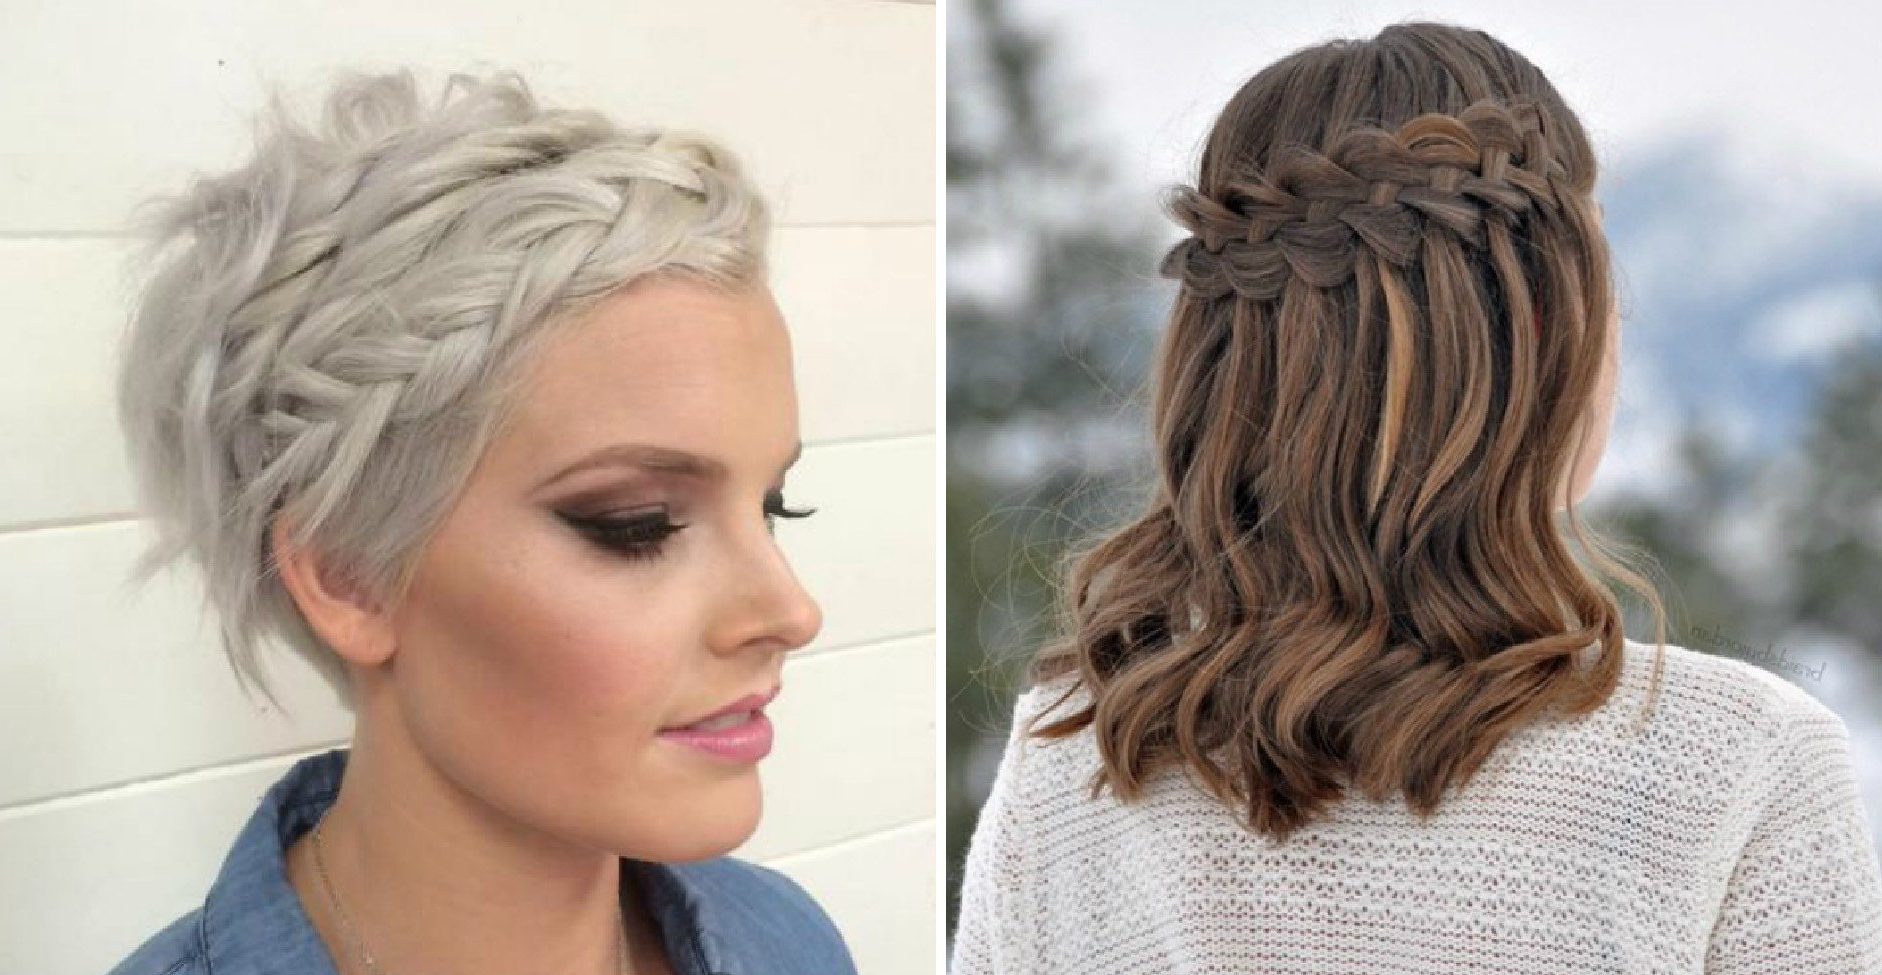 Latest Short Wedding Hairstyles With A Swanky Headband Throughout 29 Swanky Braided Hairstyles To Do On Short Hair – Wild About Beauty (View 10 of 20)